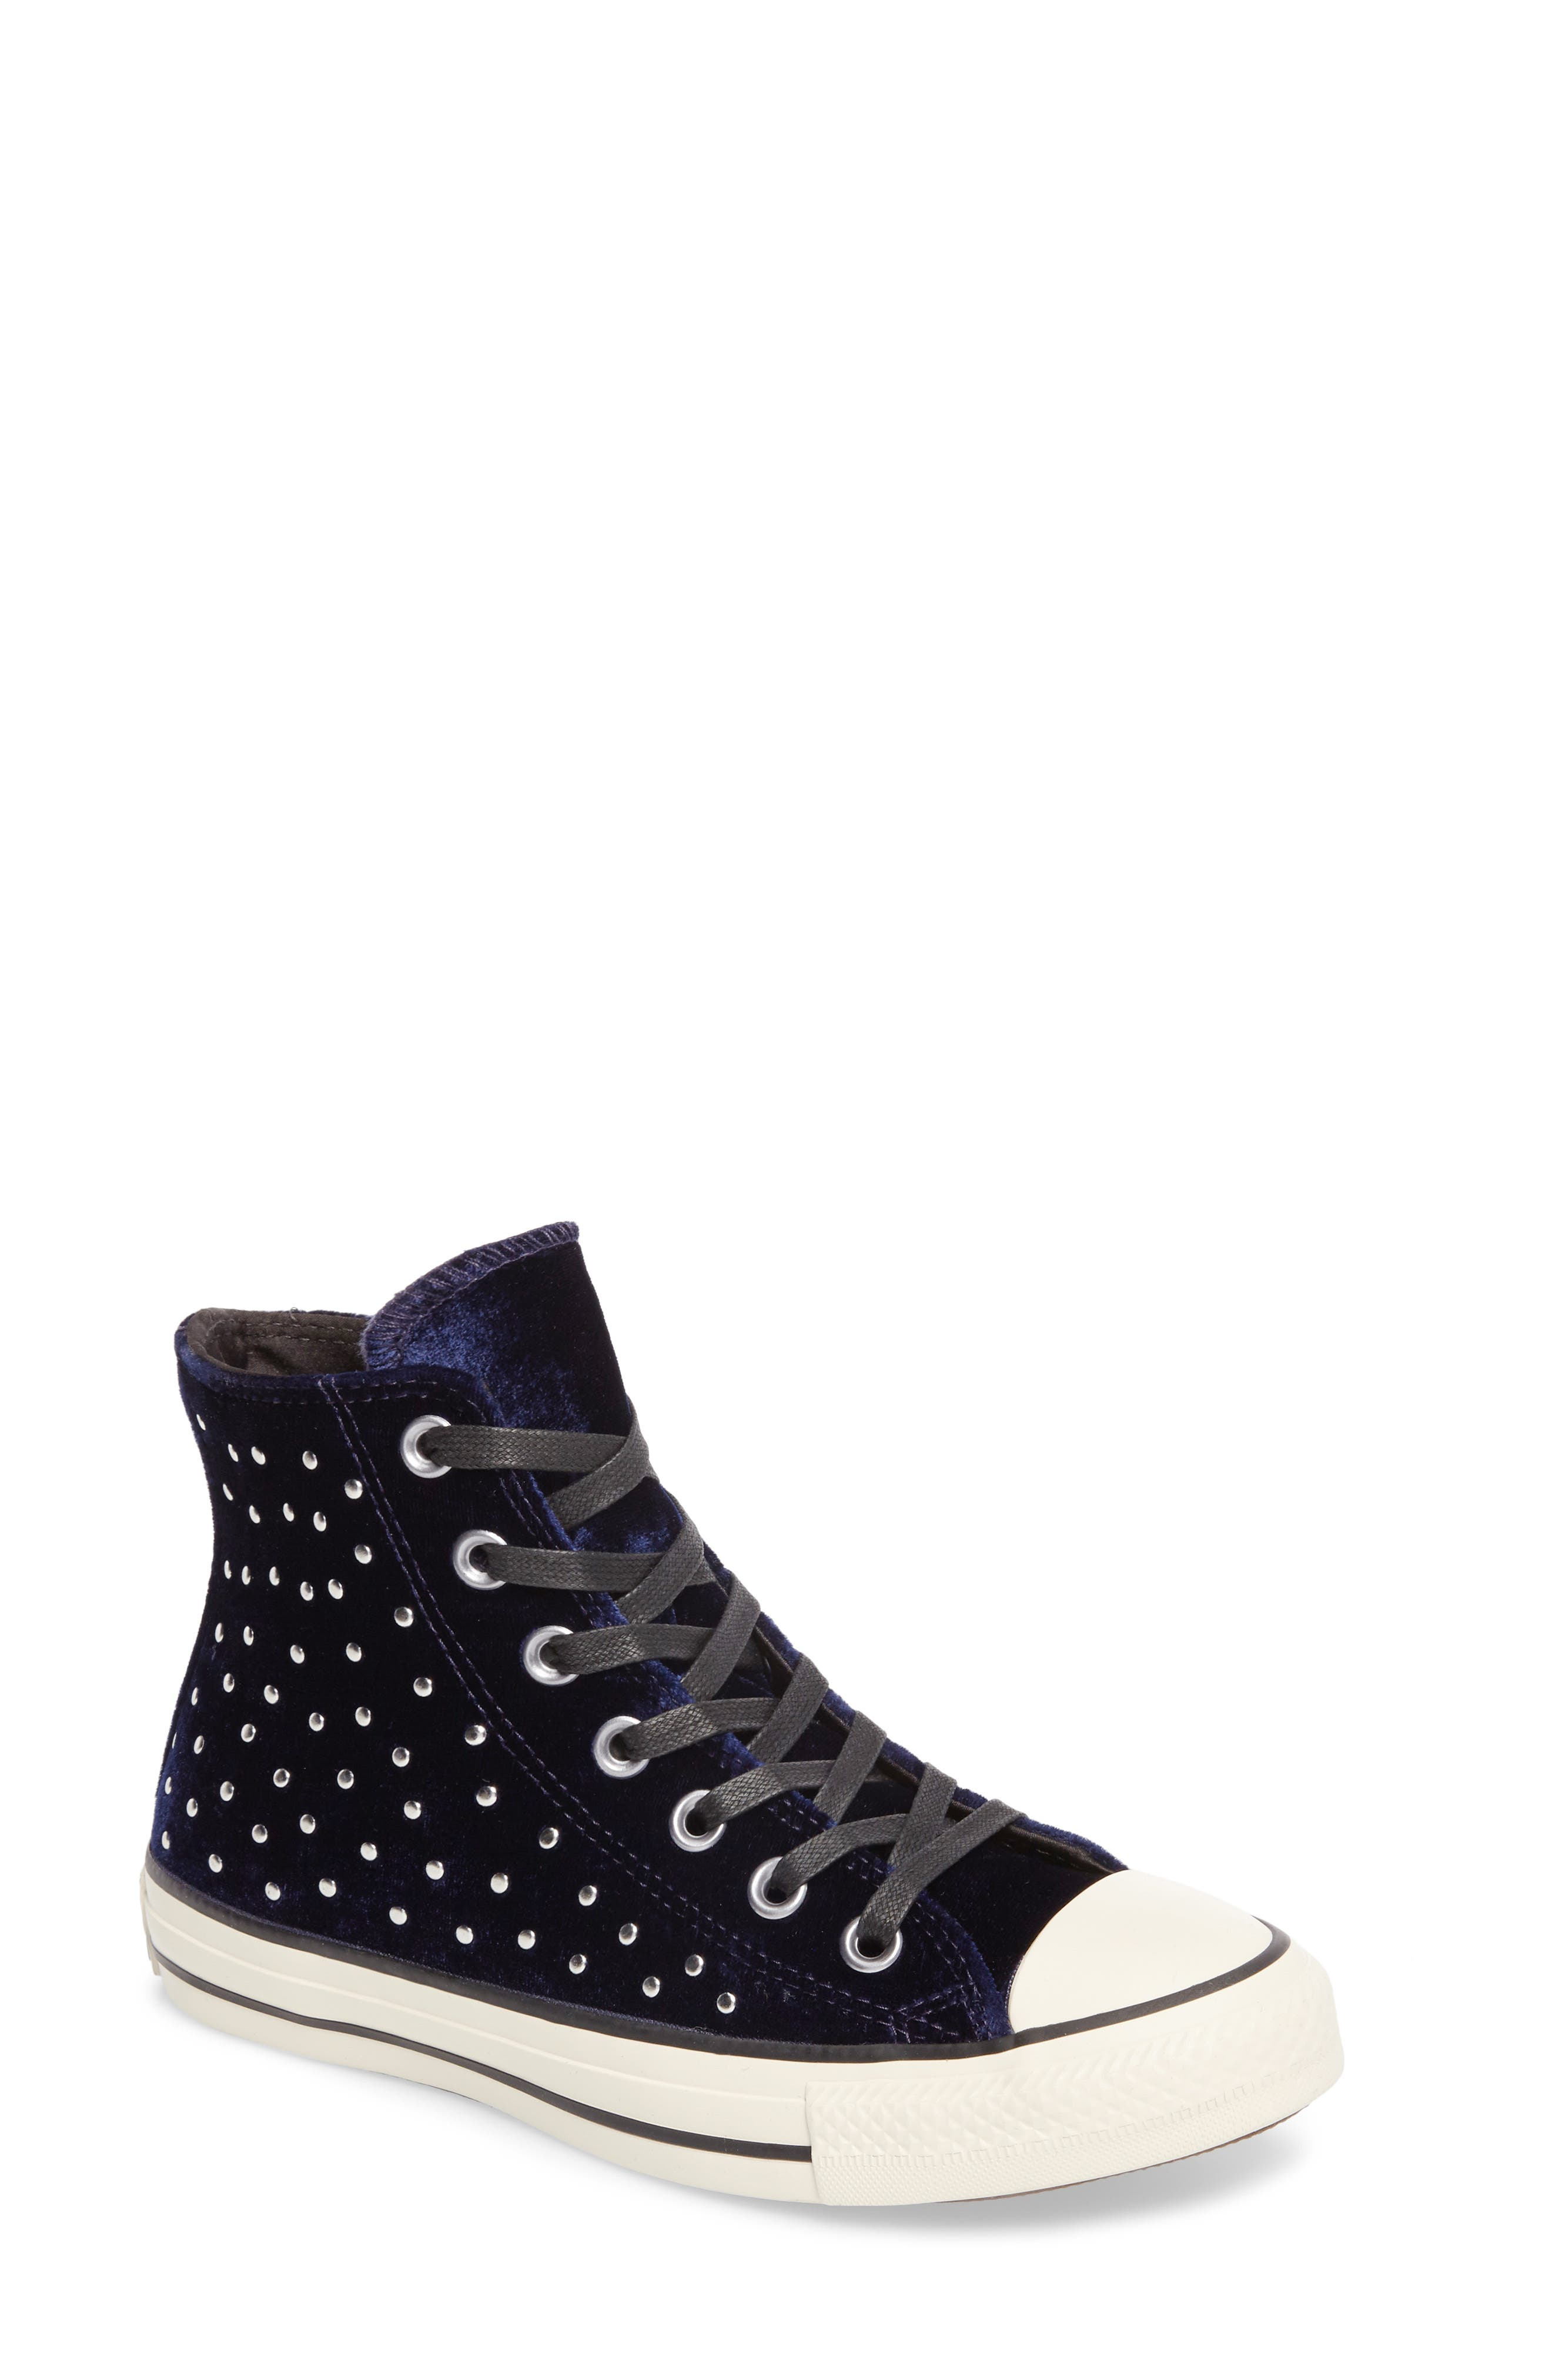 Chuck Taylor<sup>®</sup> All Star<sup>®</sup> Studded High Top Sneakers,                         Main,                         color, Eclipse Velvet